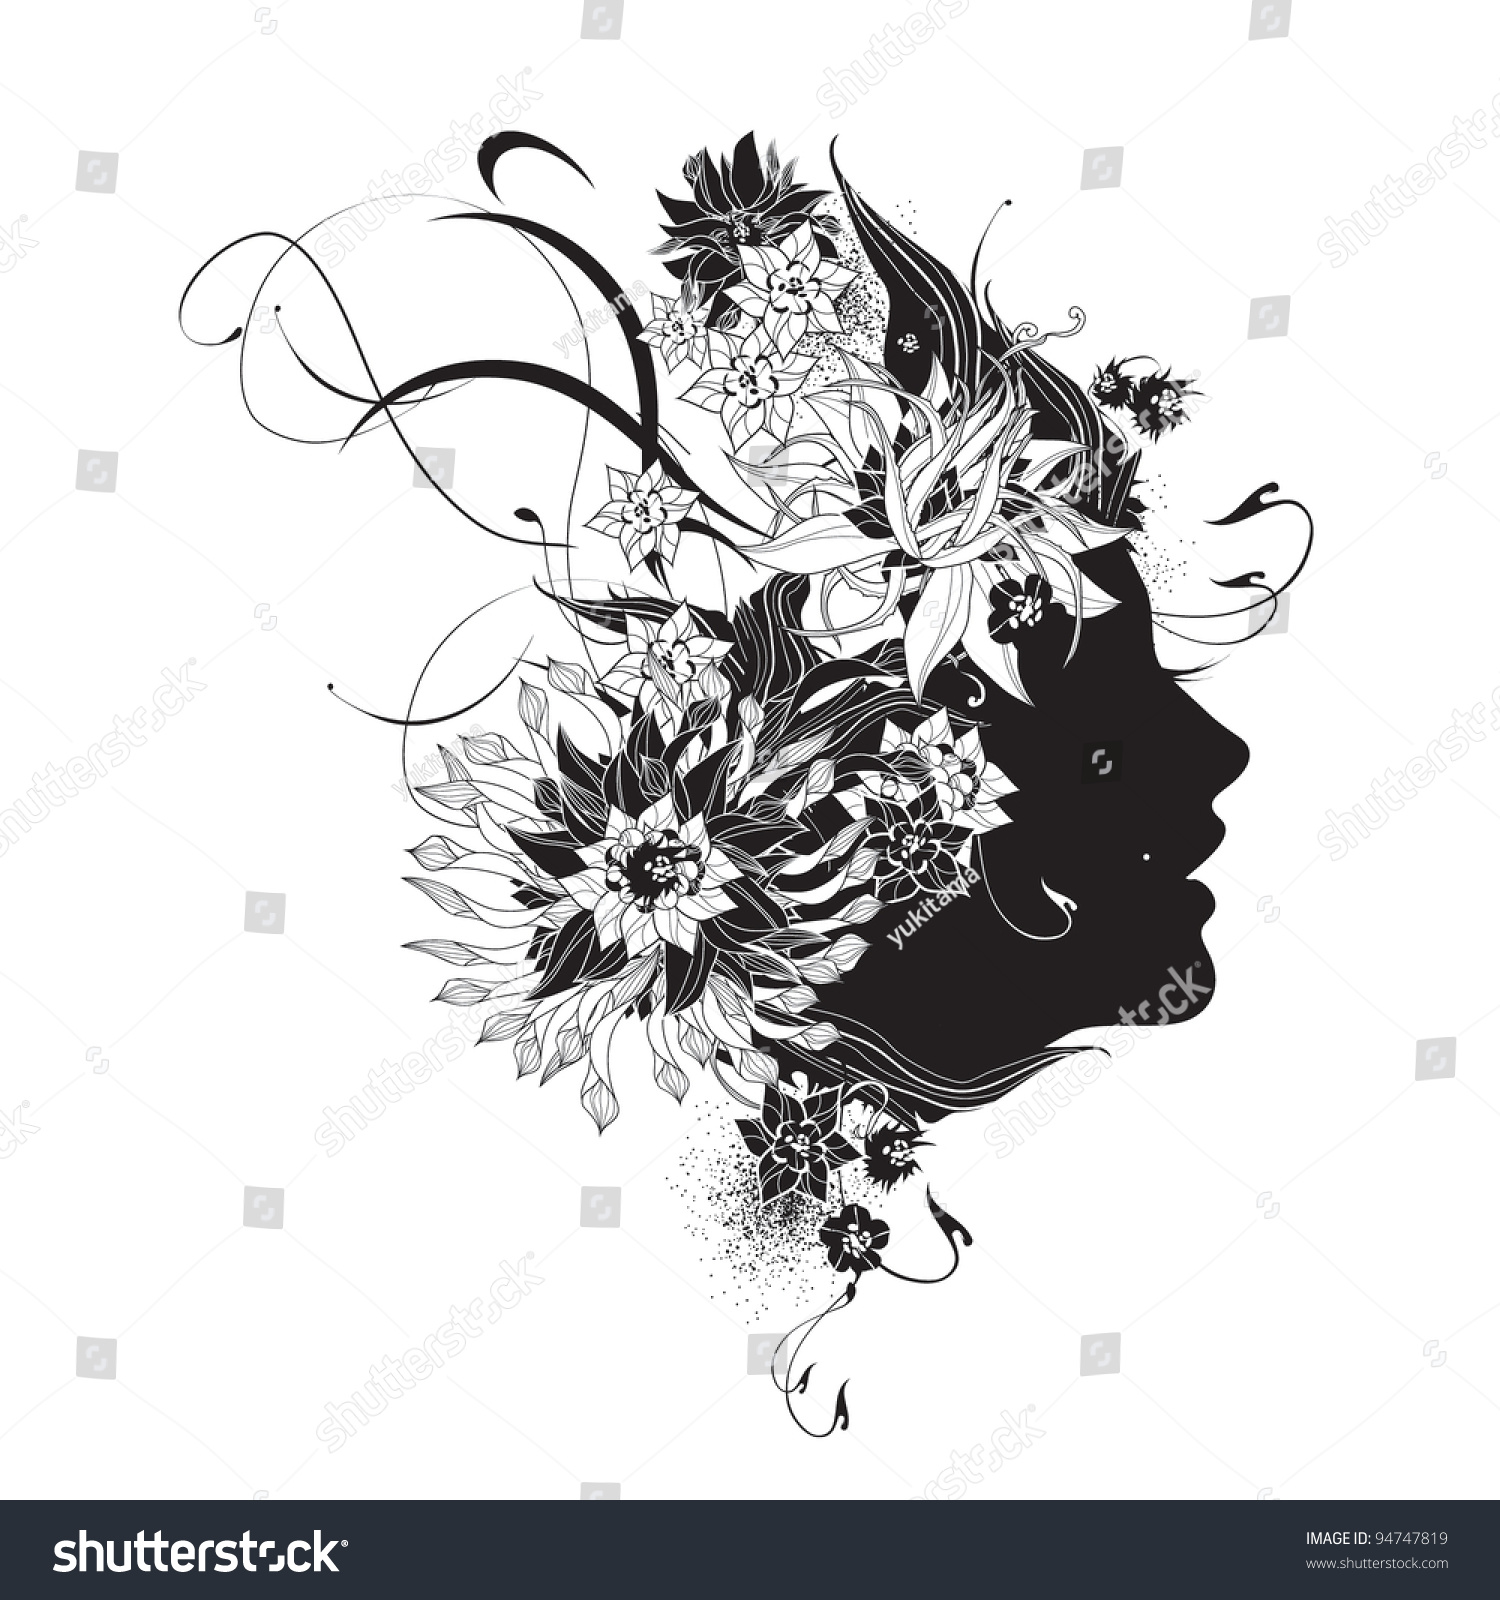 flower girl vector abstract - photo #38